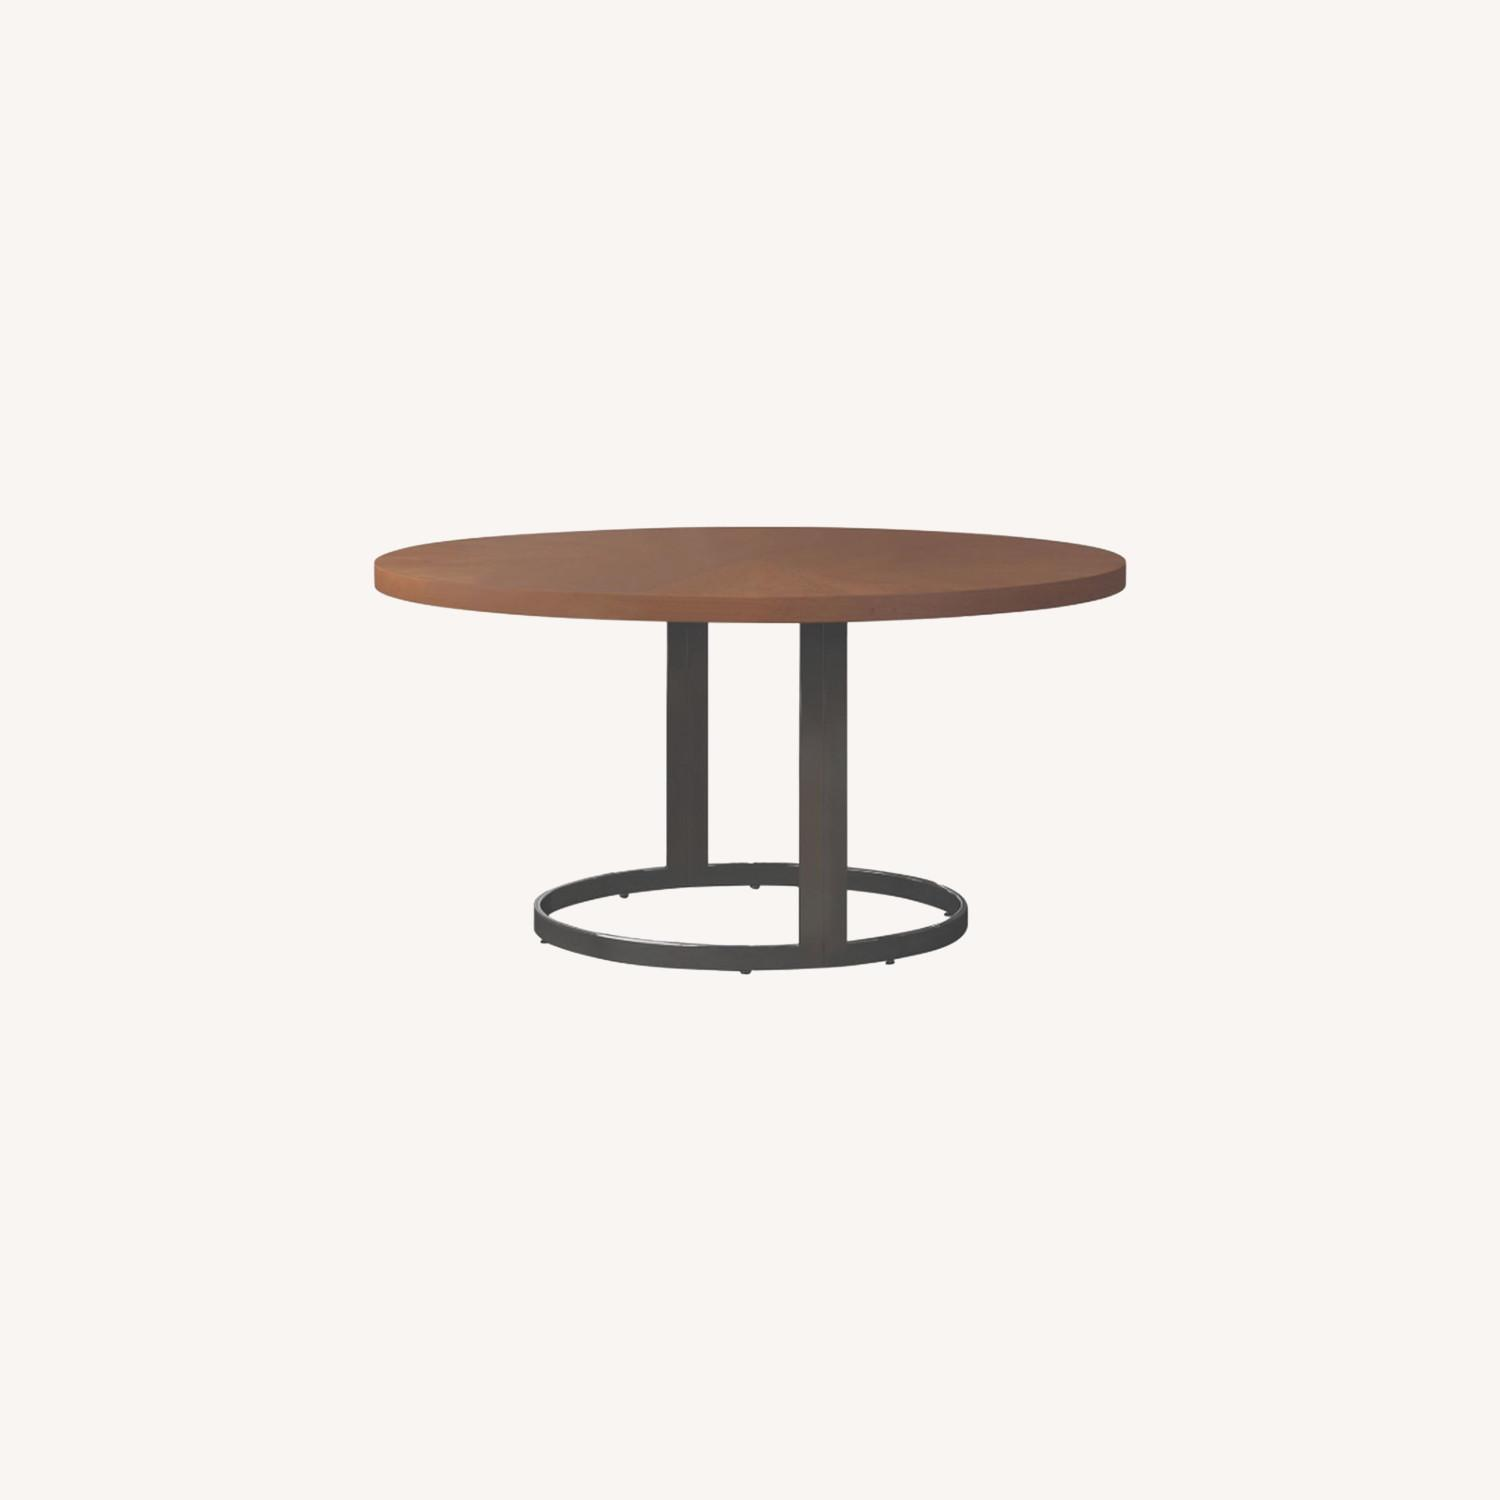 Modern Dining Table In Natural Cherry Finish - image-3